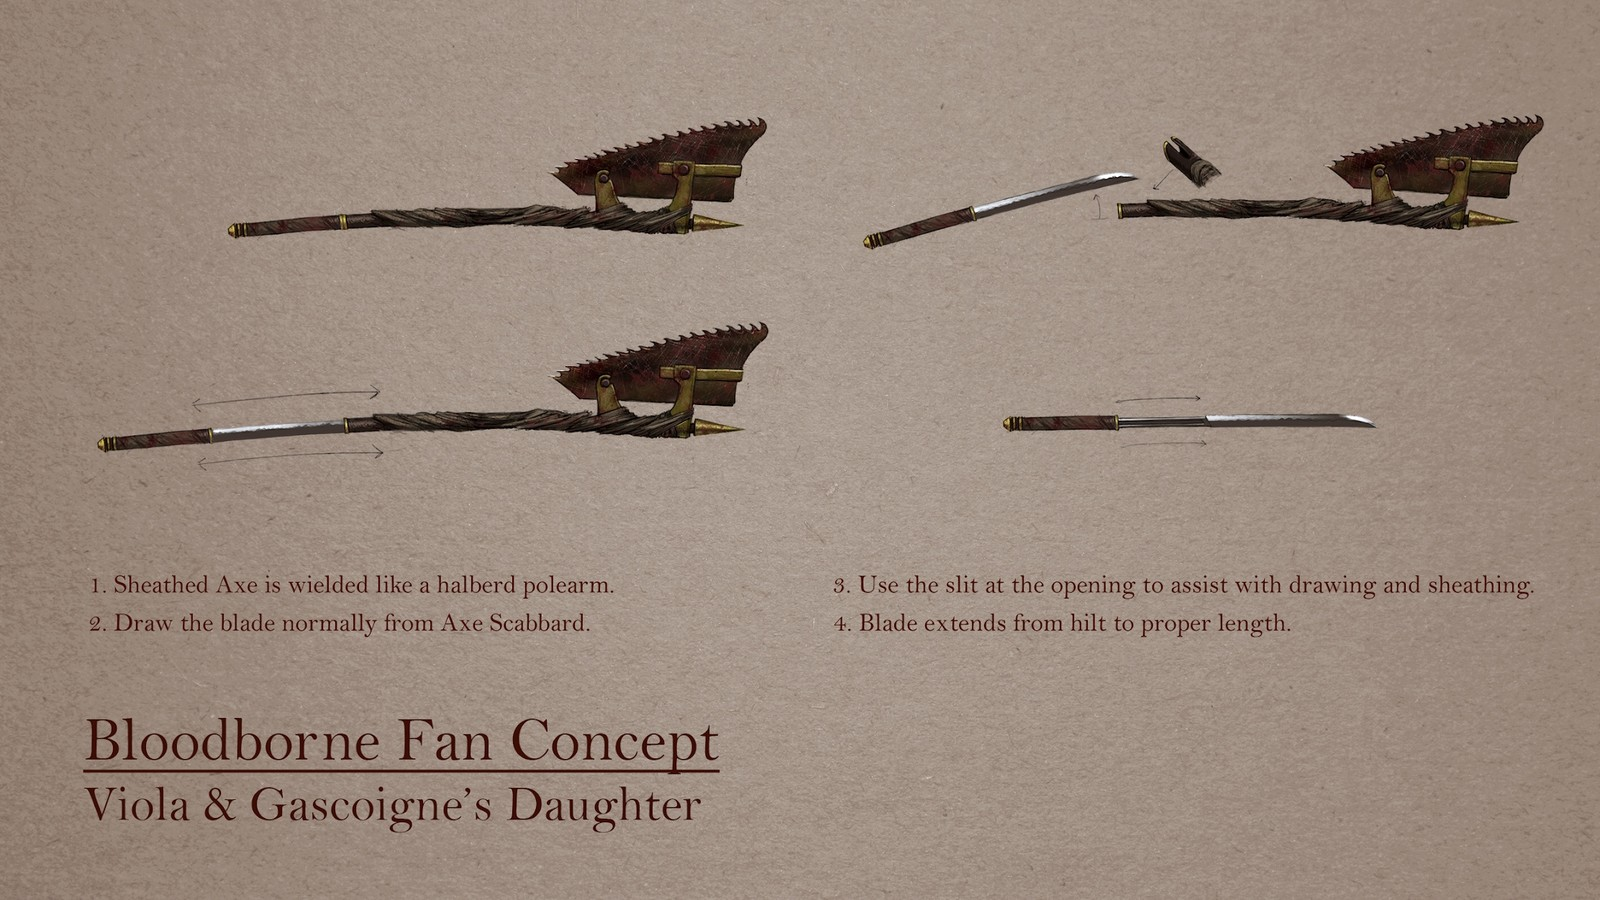 Bloodborne Fan Concept: Viola & Gascoigne's Daughter